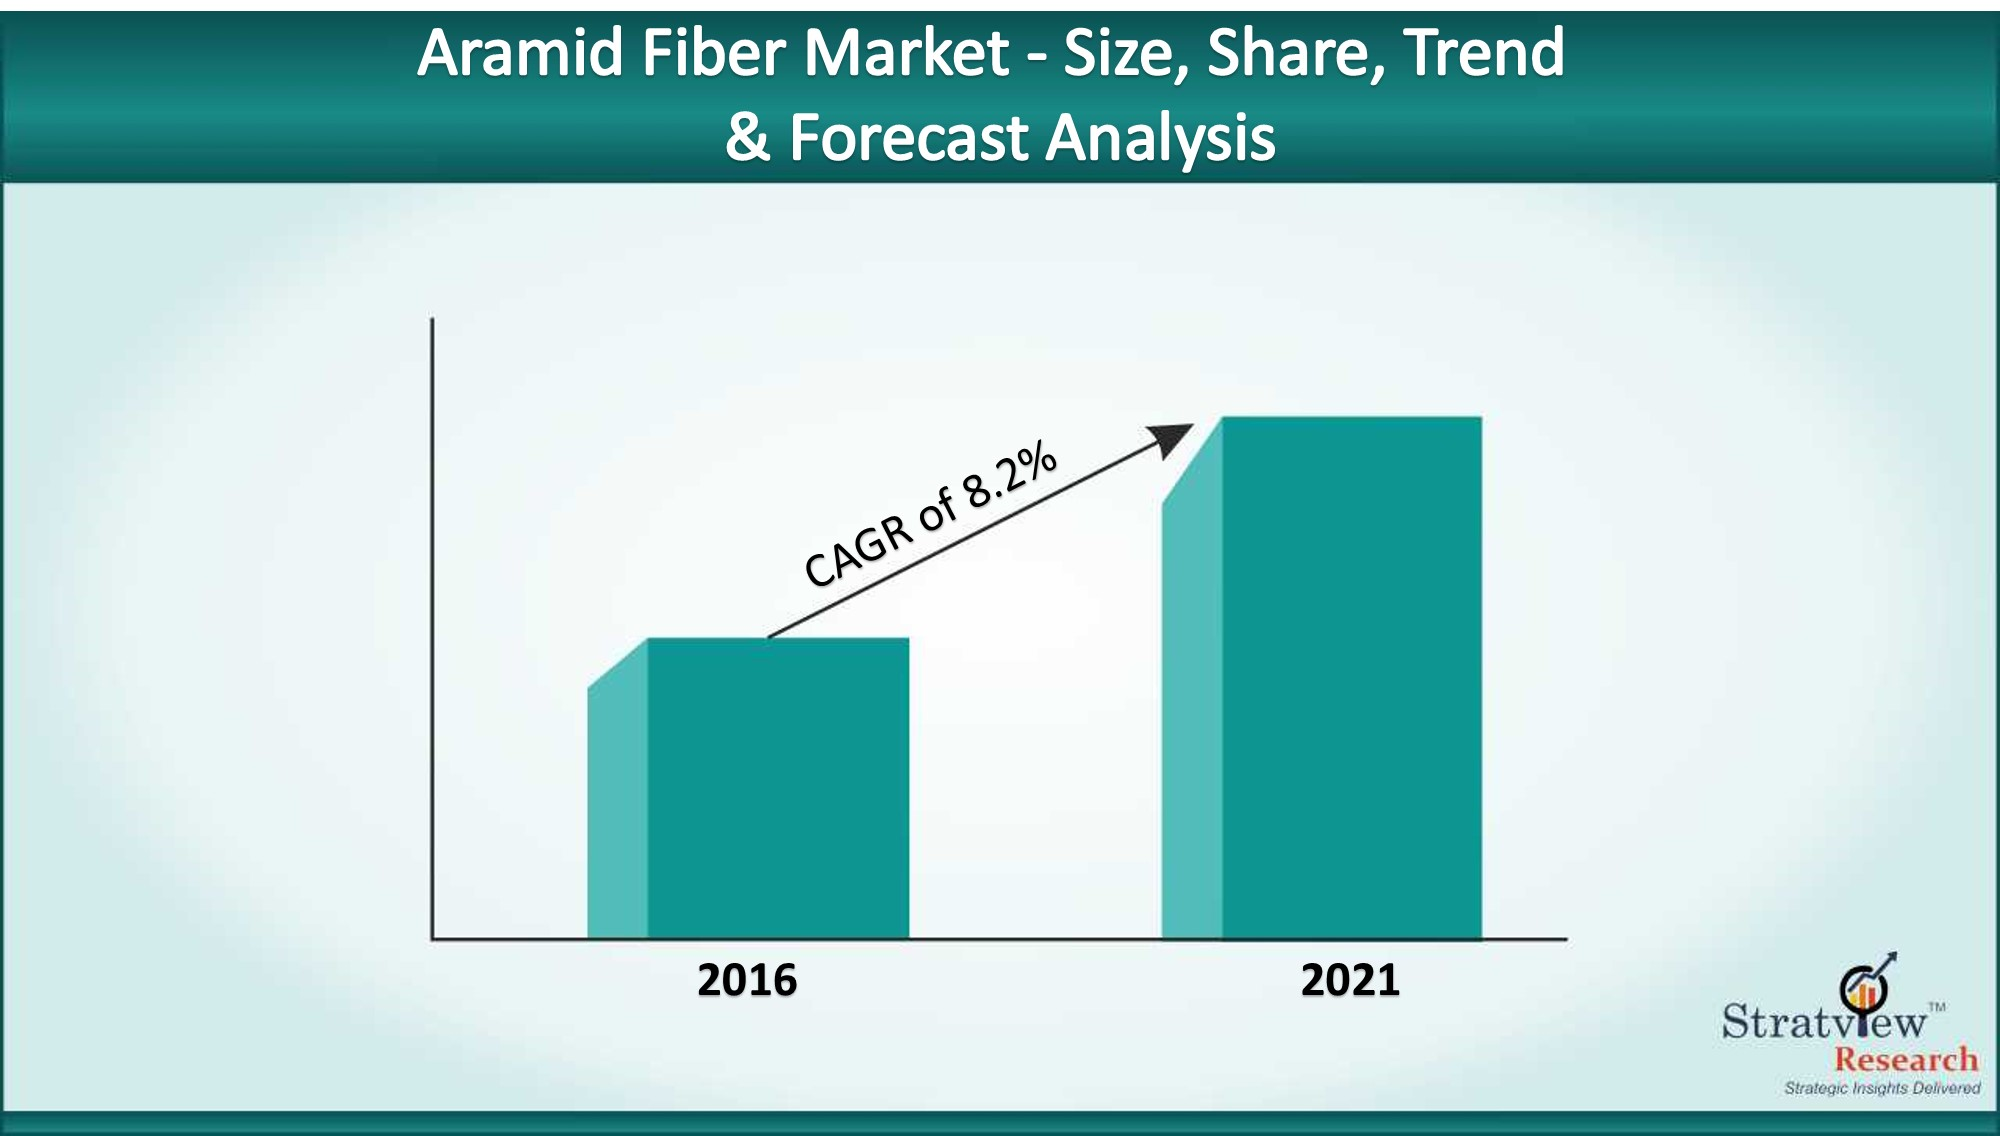 The changing dynamics in Aramid Fiber Market with covid-19 impact assessment